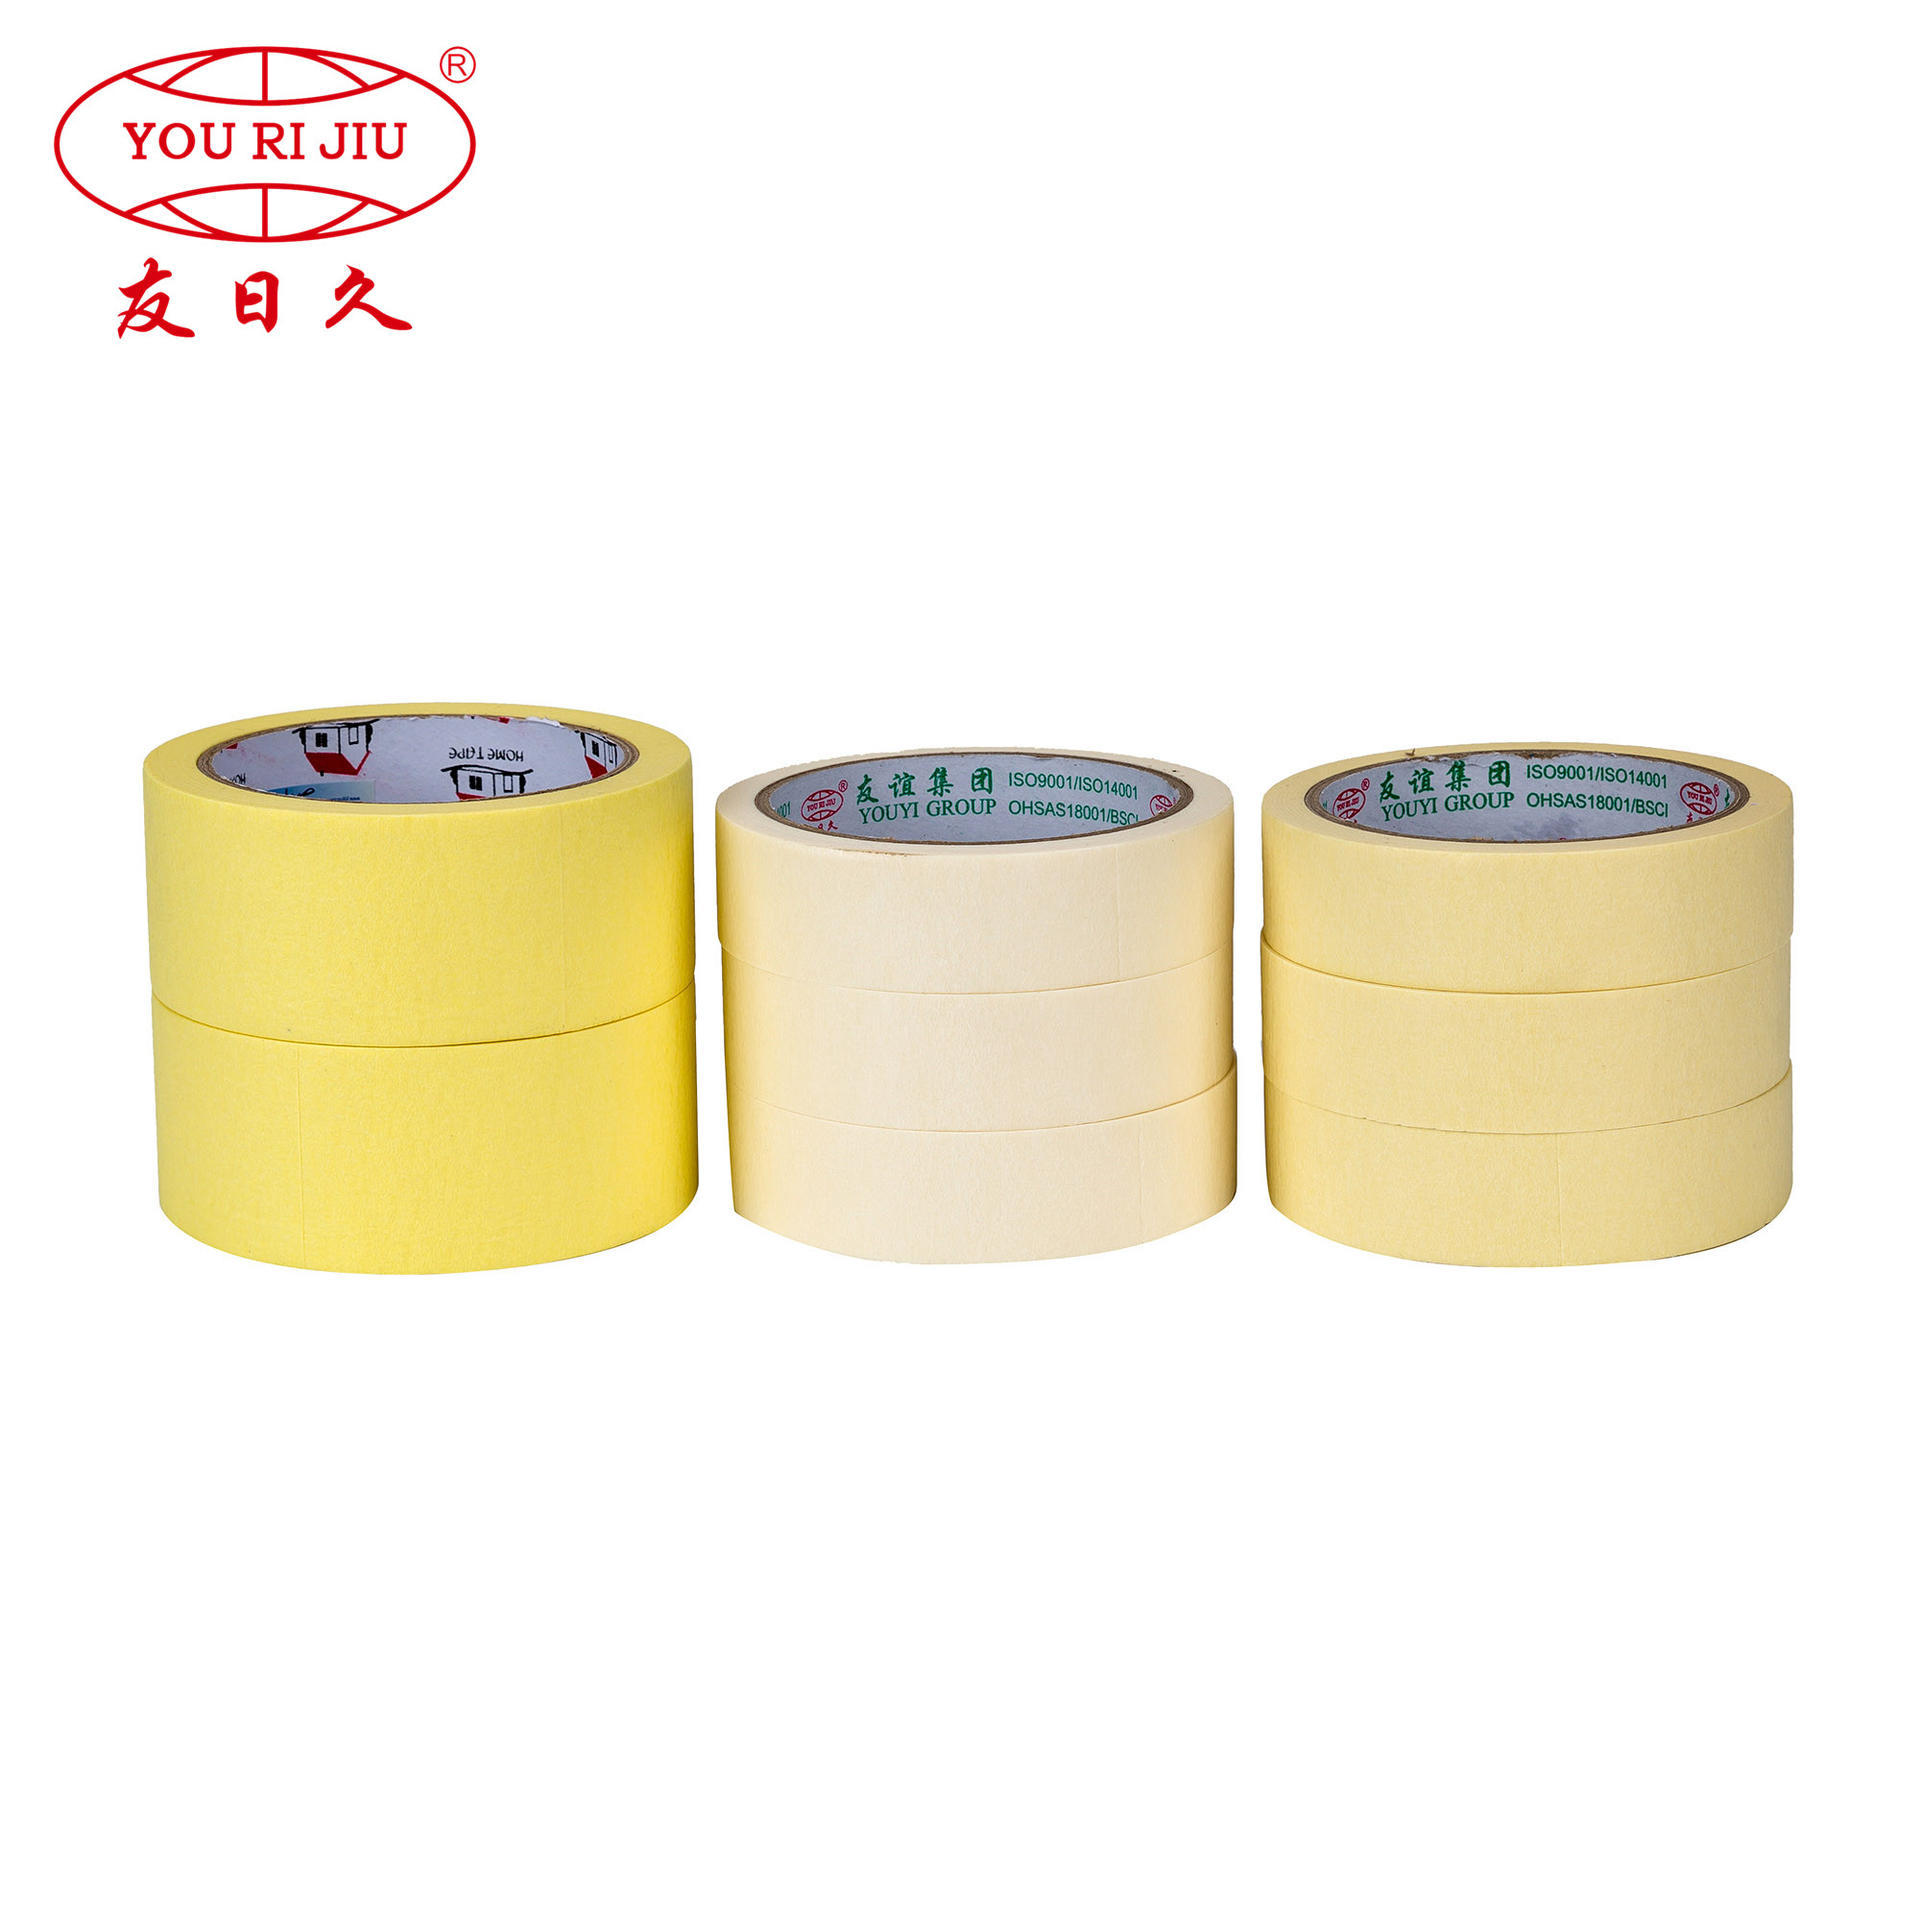 Cheapest place buy easy tear automotive high temperature masking tape